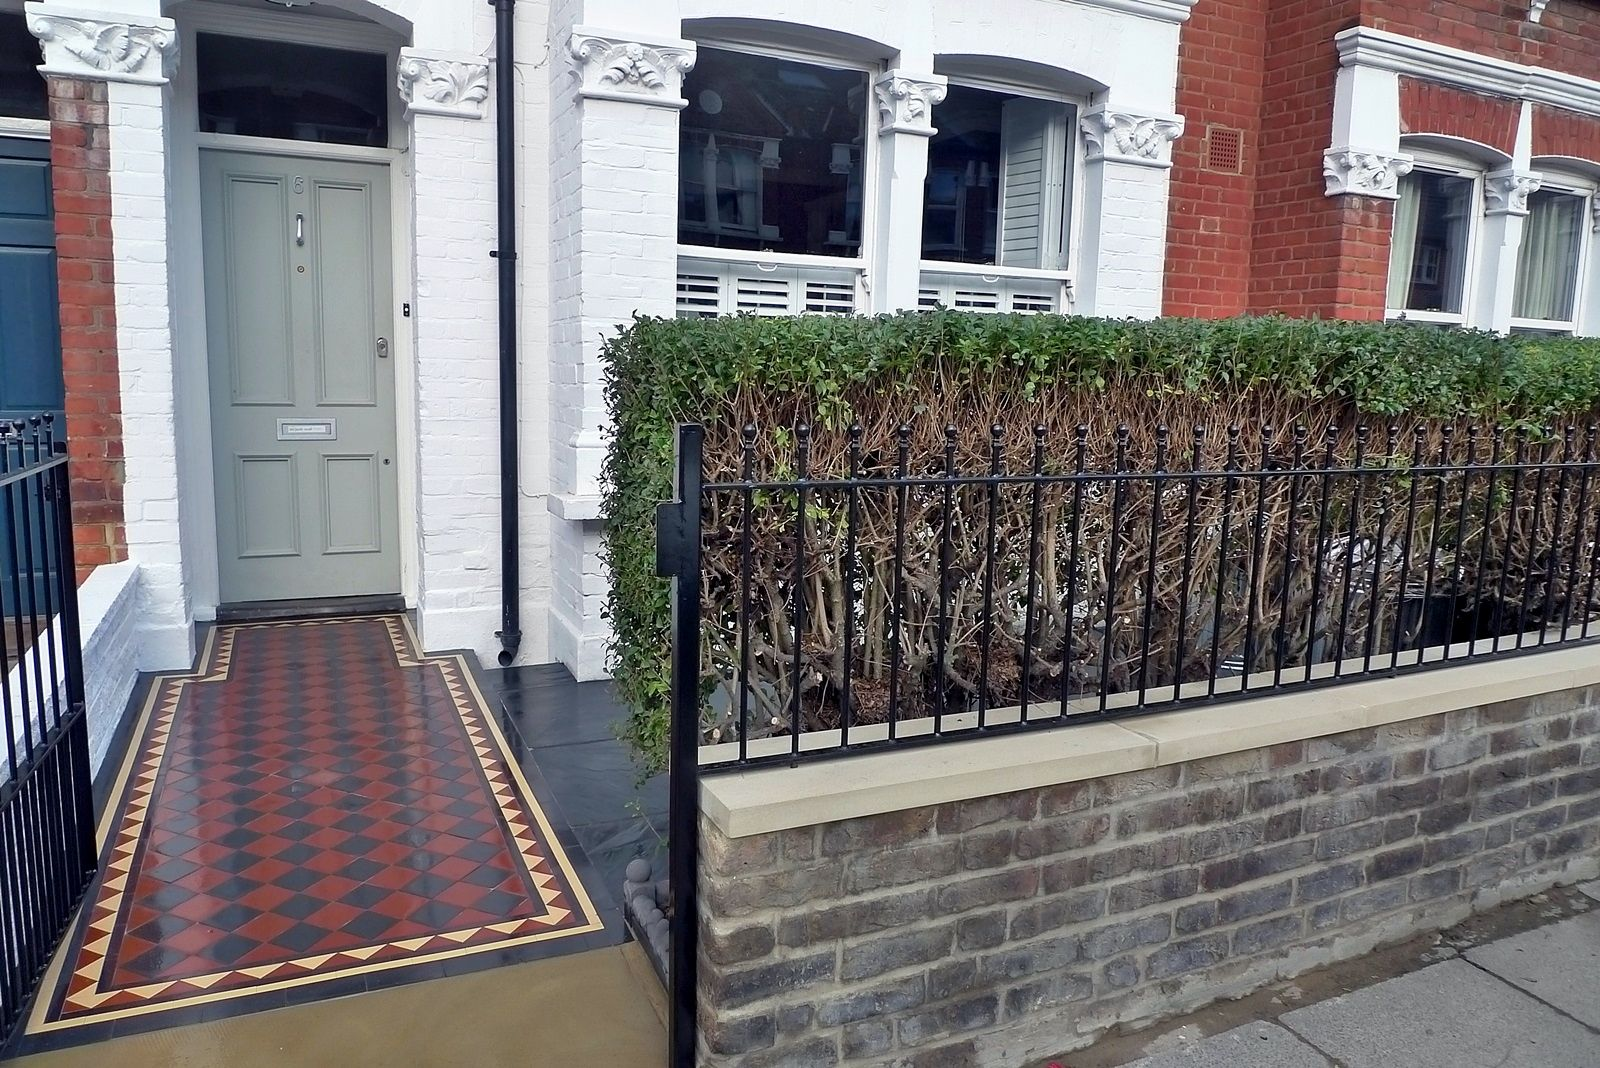 South West London Front Garden Design And Landscaping Mosaic Yorkstone  Stock Brick Wall Slate Paving Wrought Iron Rail And Gate